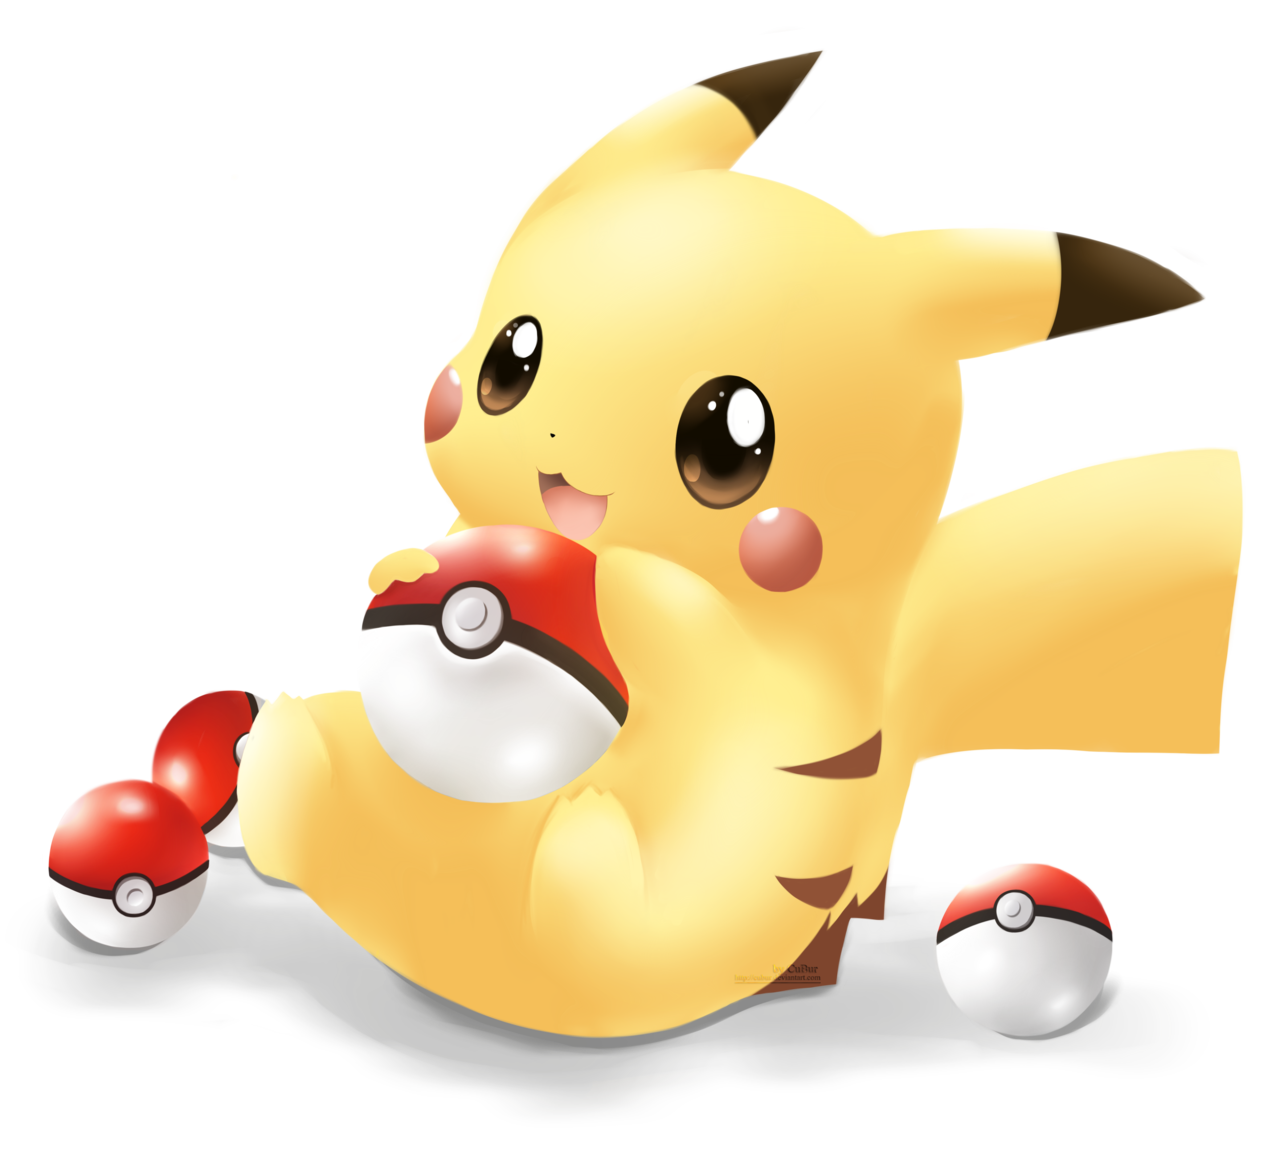 1280x1151 Wallpaper Hd For Pikachu Clip Art On Clipart Cute Pokemon Images